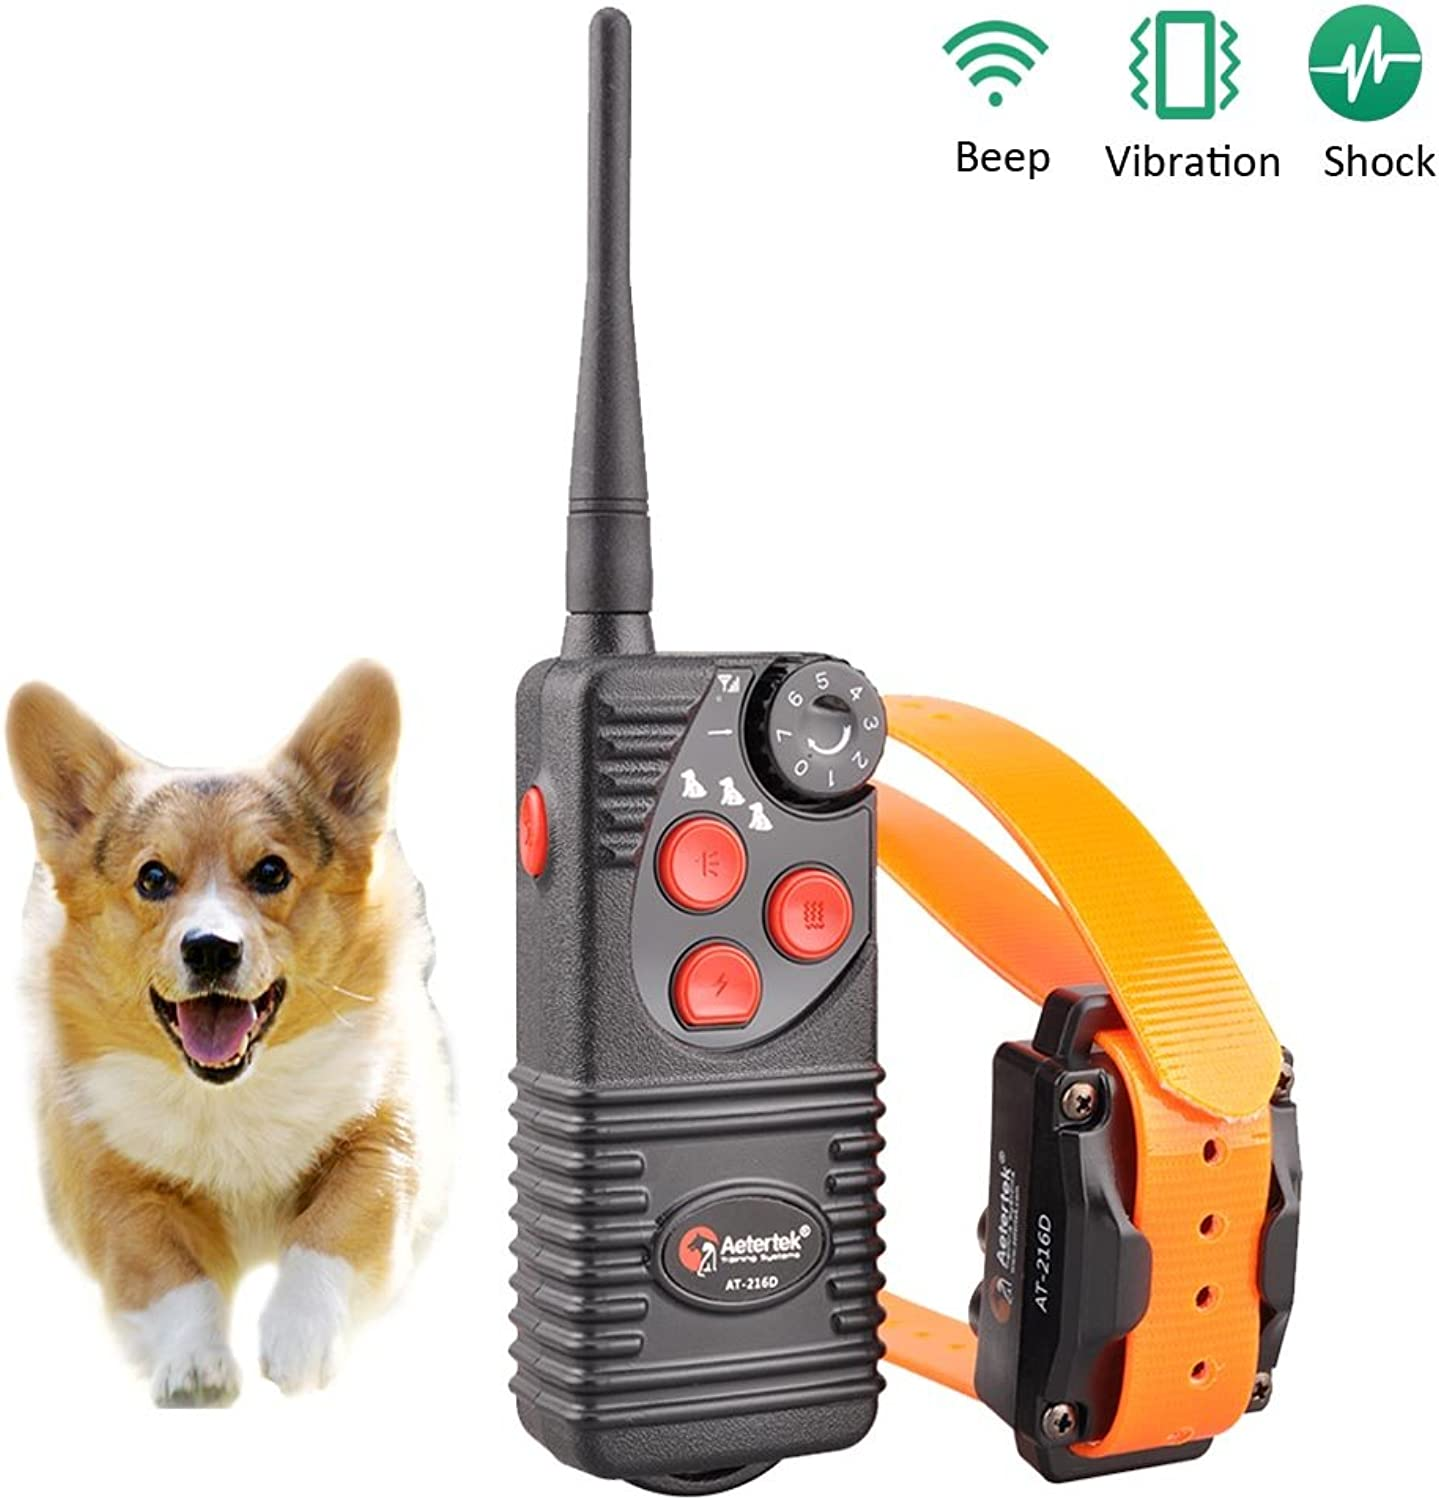 Aetertek 600 Yard Remote Dog Trainer with Waterproof Rechargeable Dog Training Shock Collar  7 Adjustable Shock Levels Plus BEEP Tone and Vibration (for 1 Dog Training)